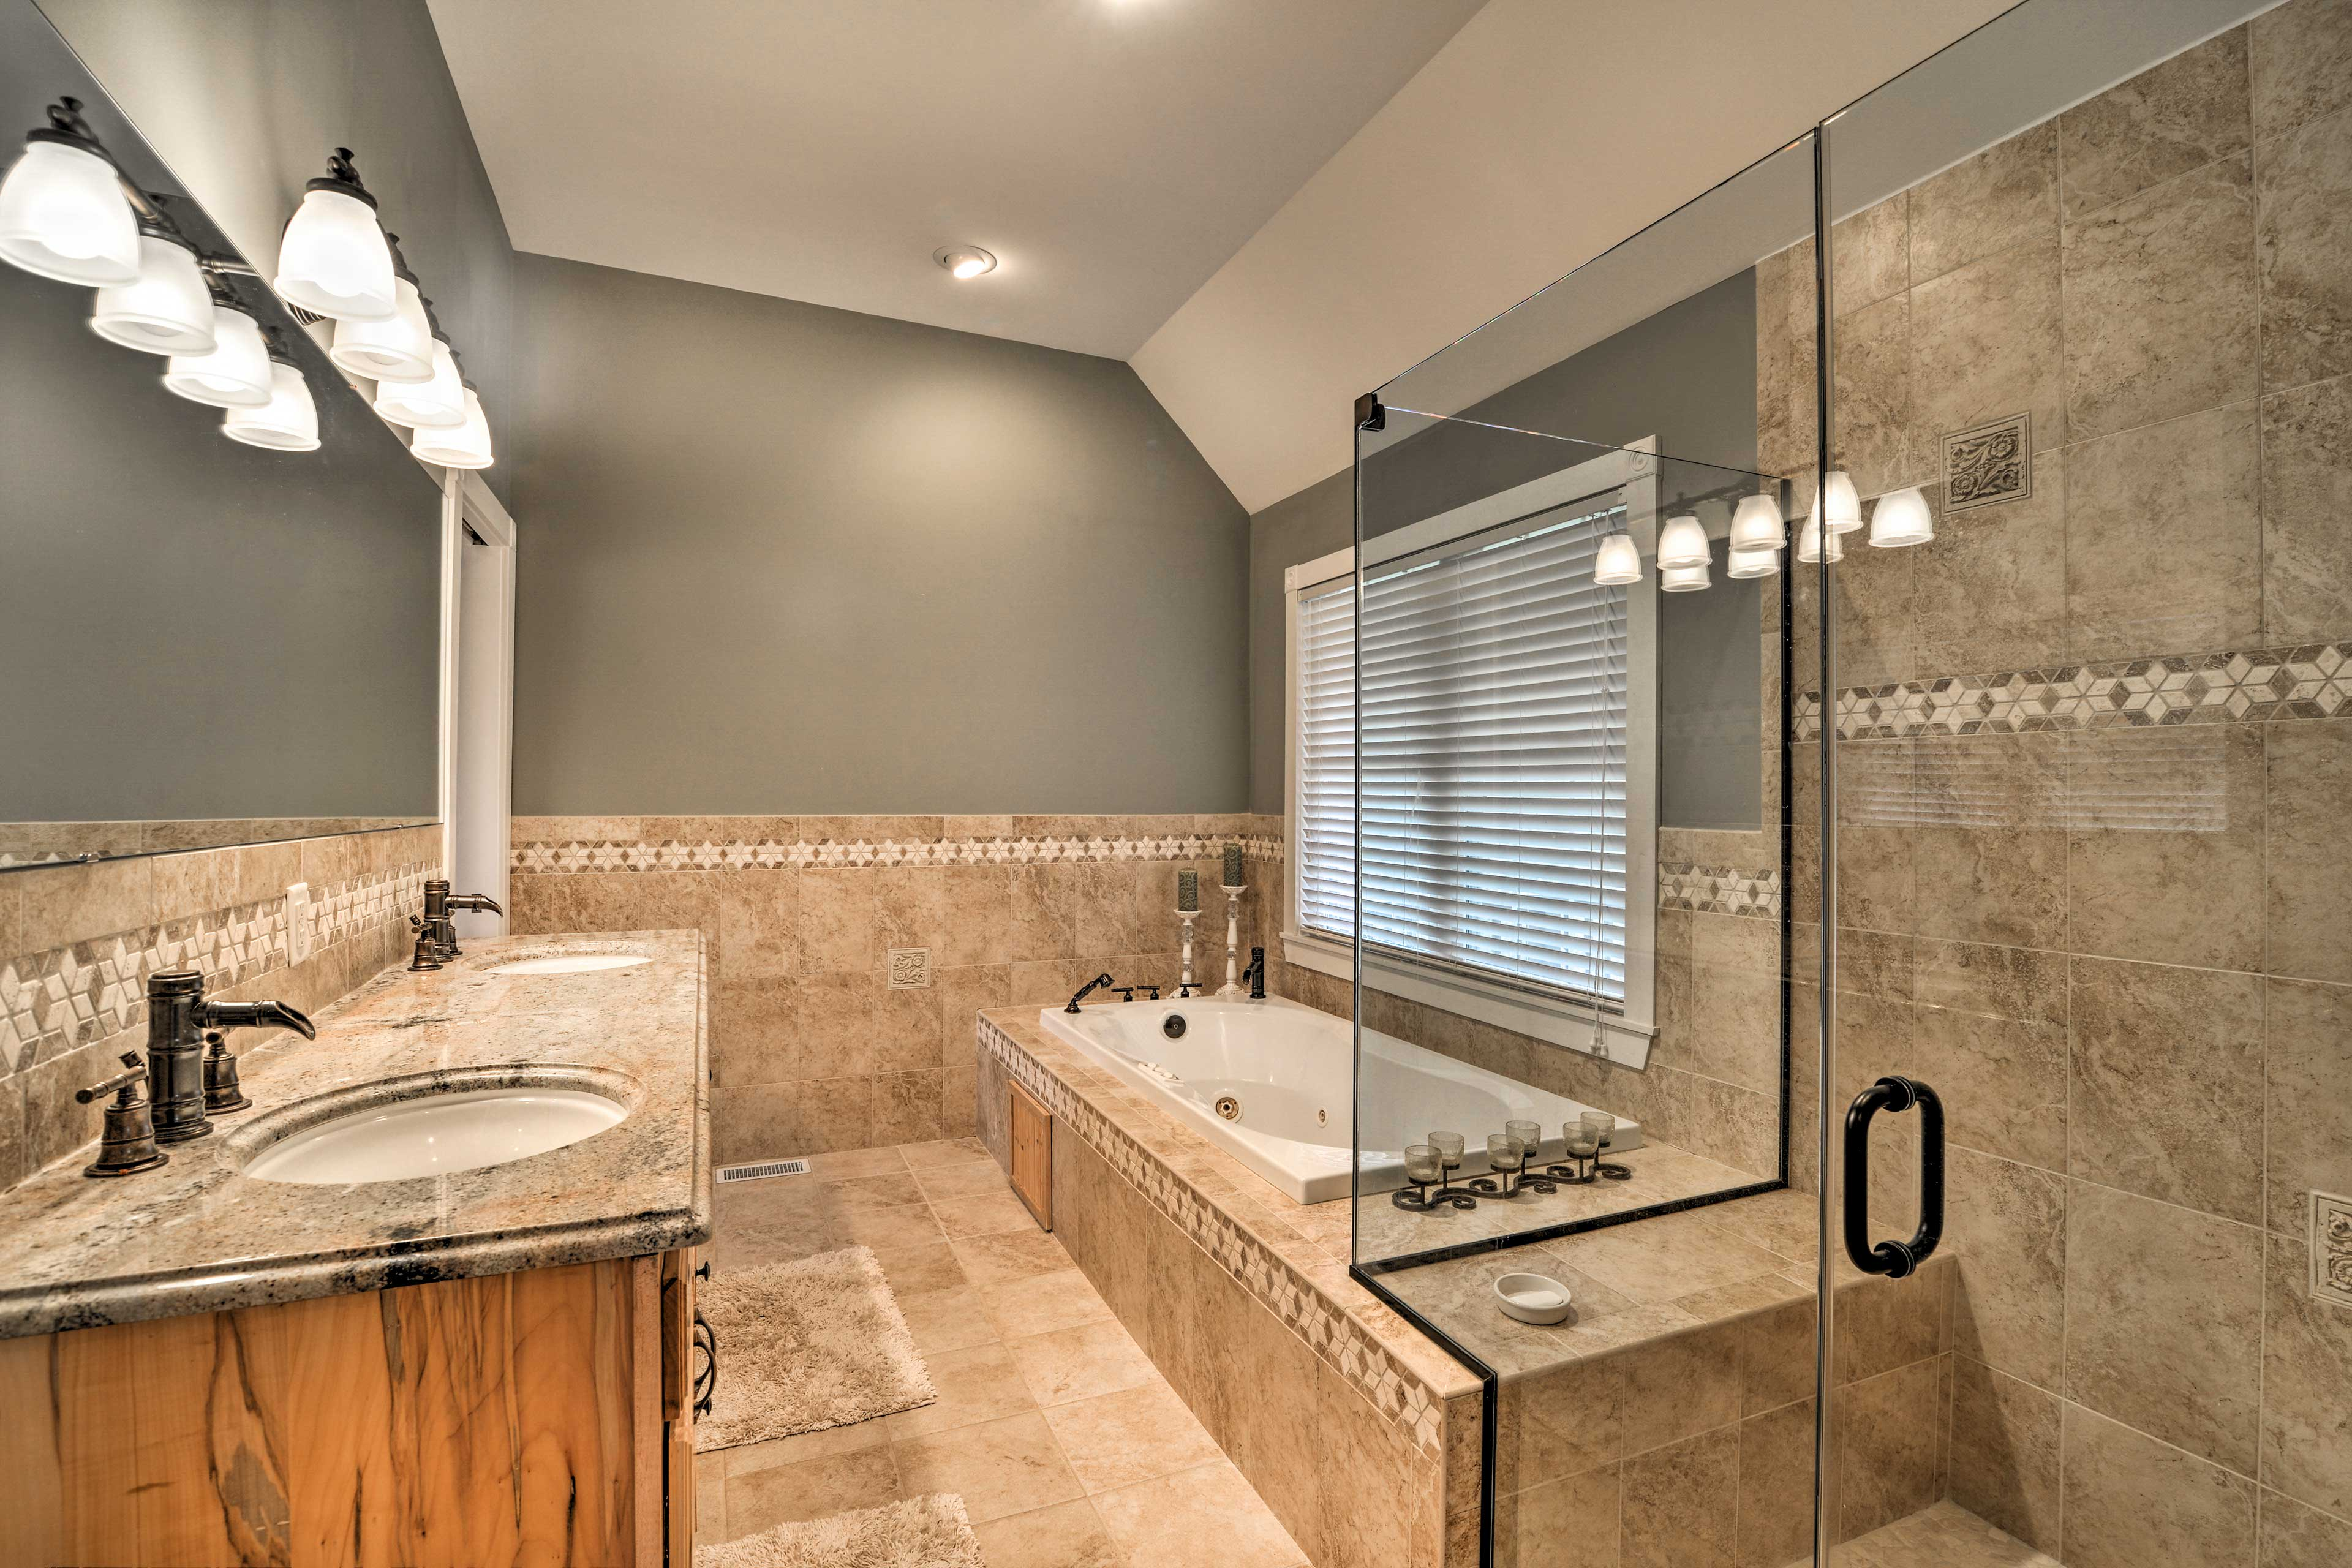 The master bathroom hosts dual sinks, a walk-in shower. and jetted tub.